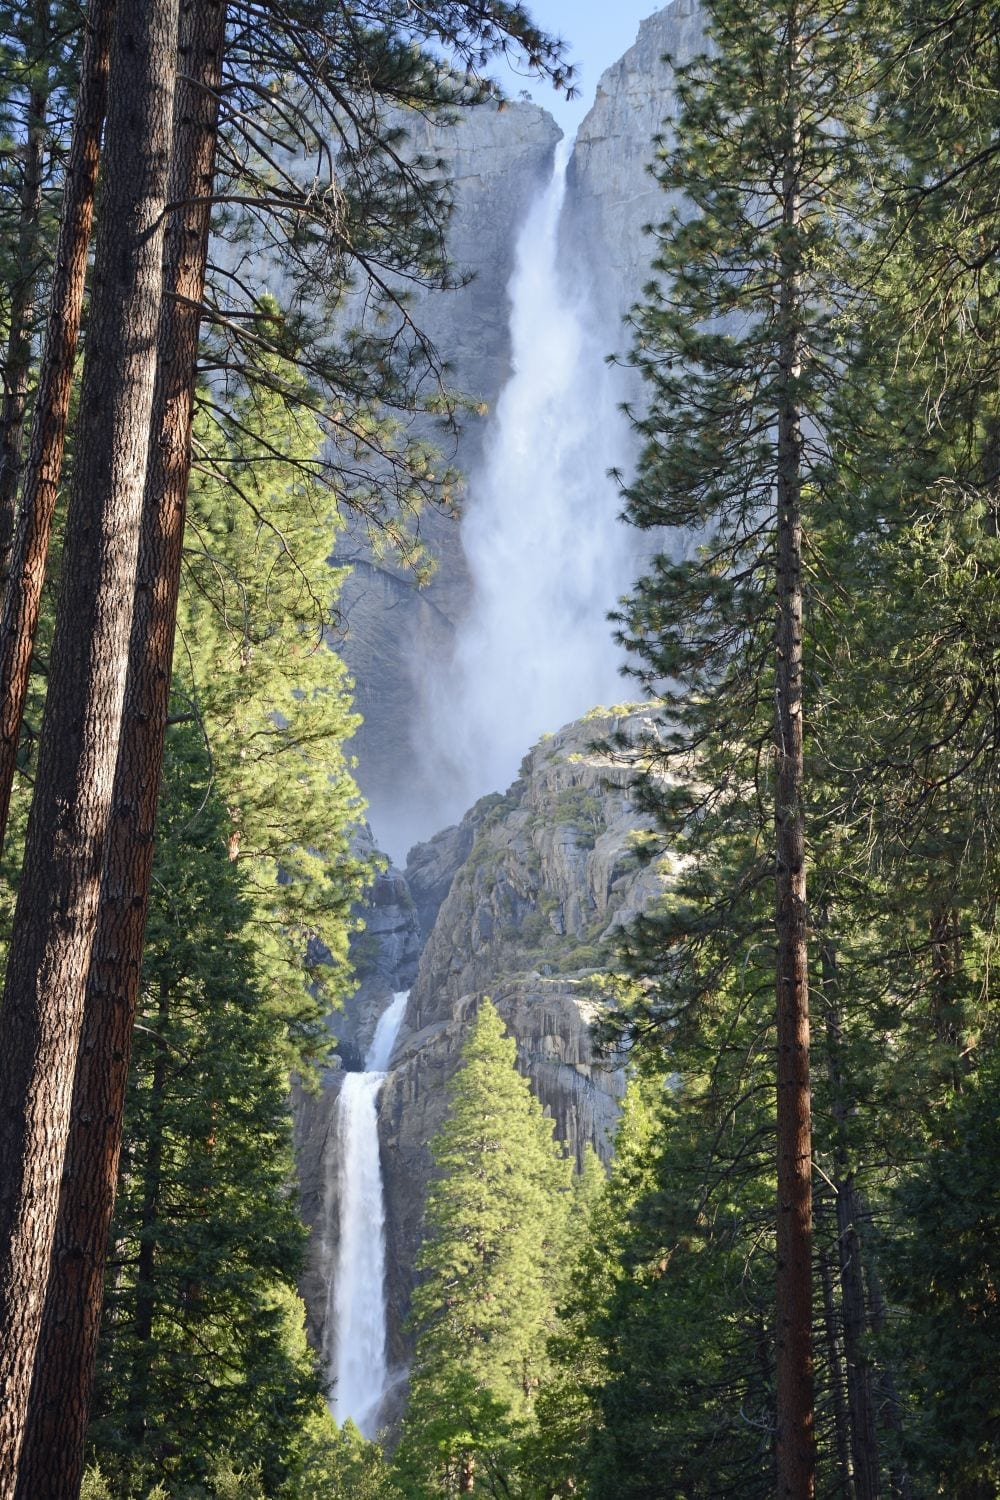 Yosemite & Sequoia National Parks Good Faith Experience: June 5-12, 2021